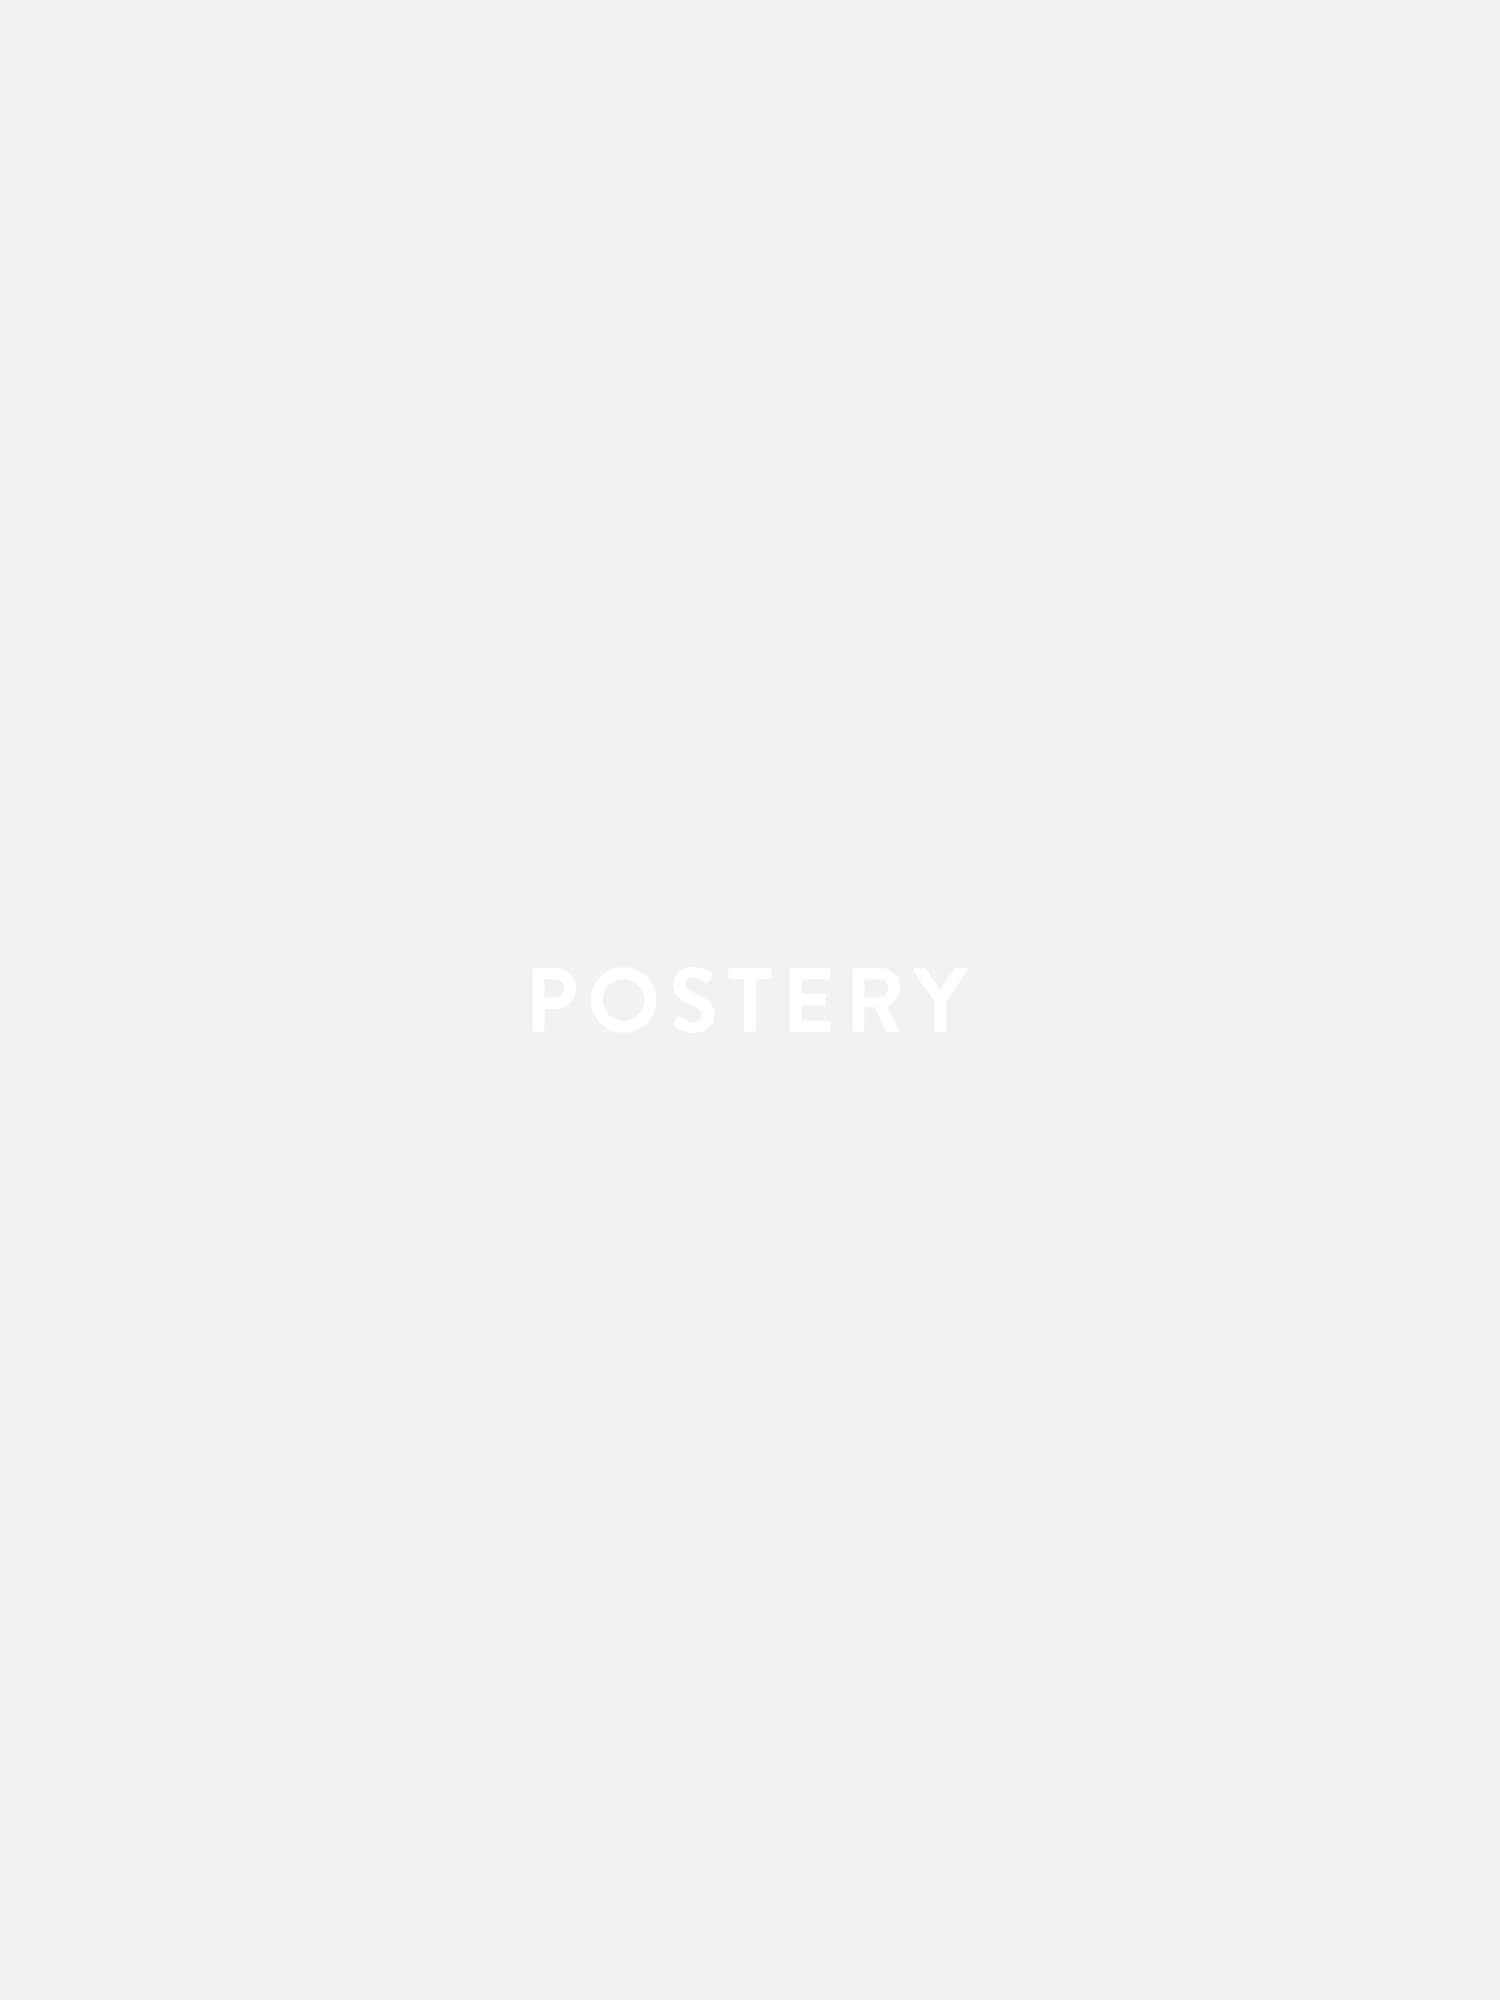 Minty Ocean View Poster